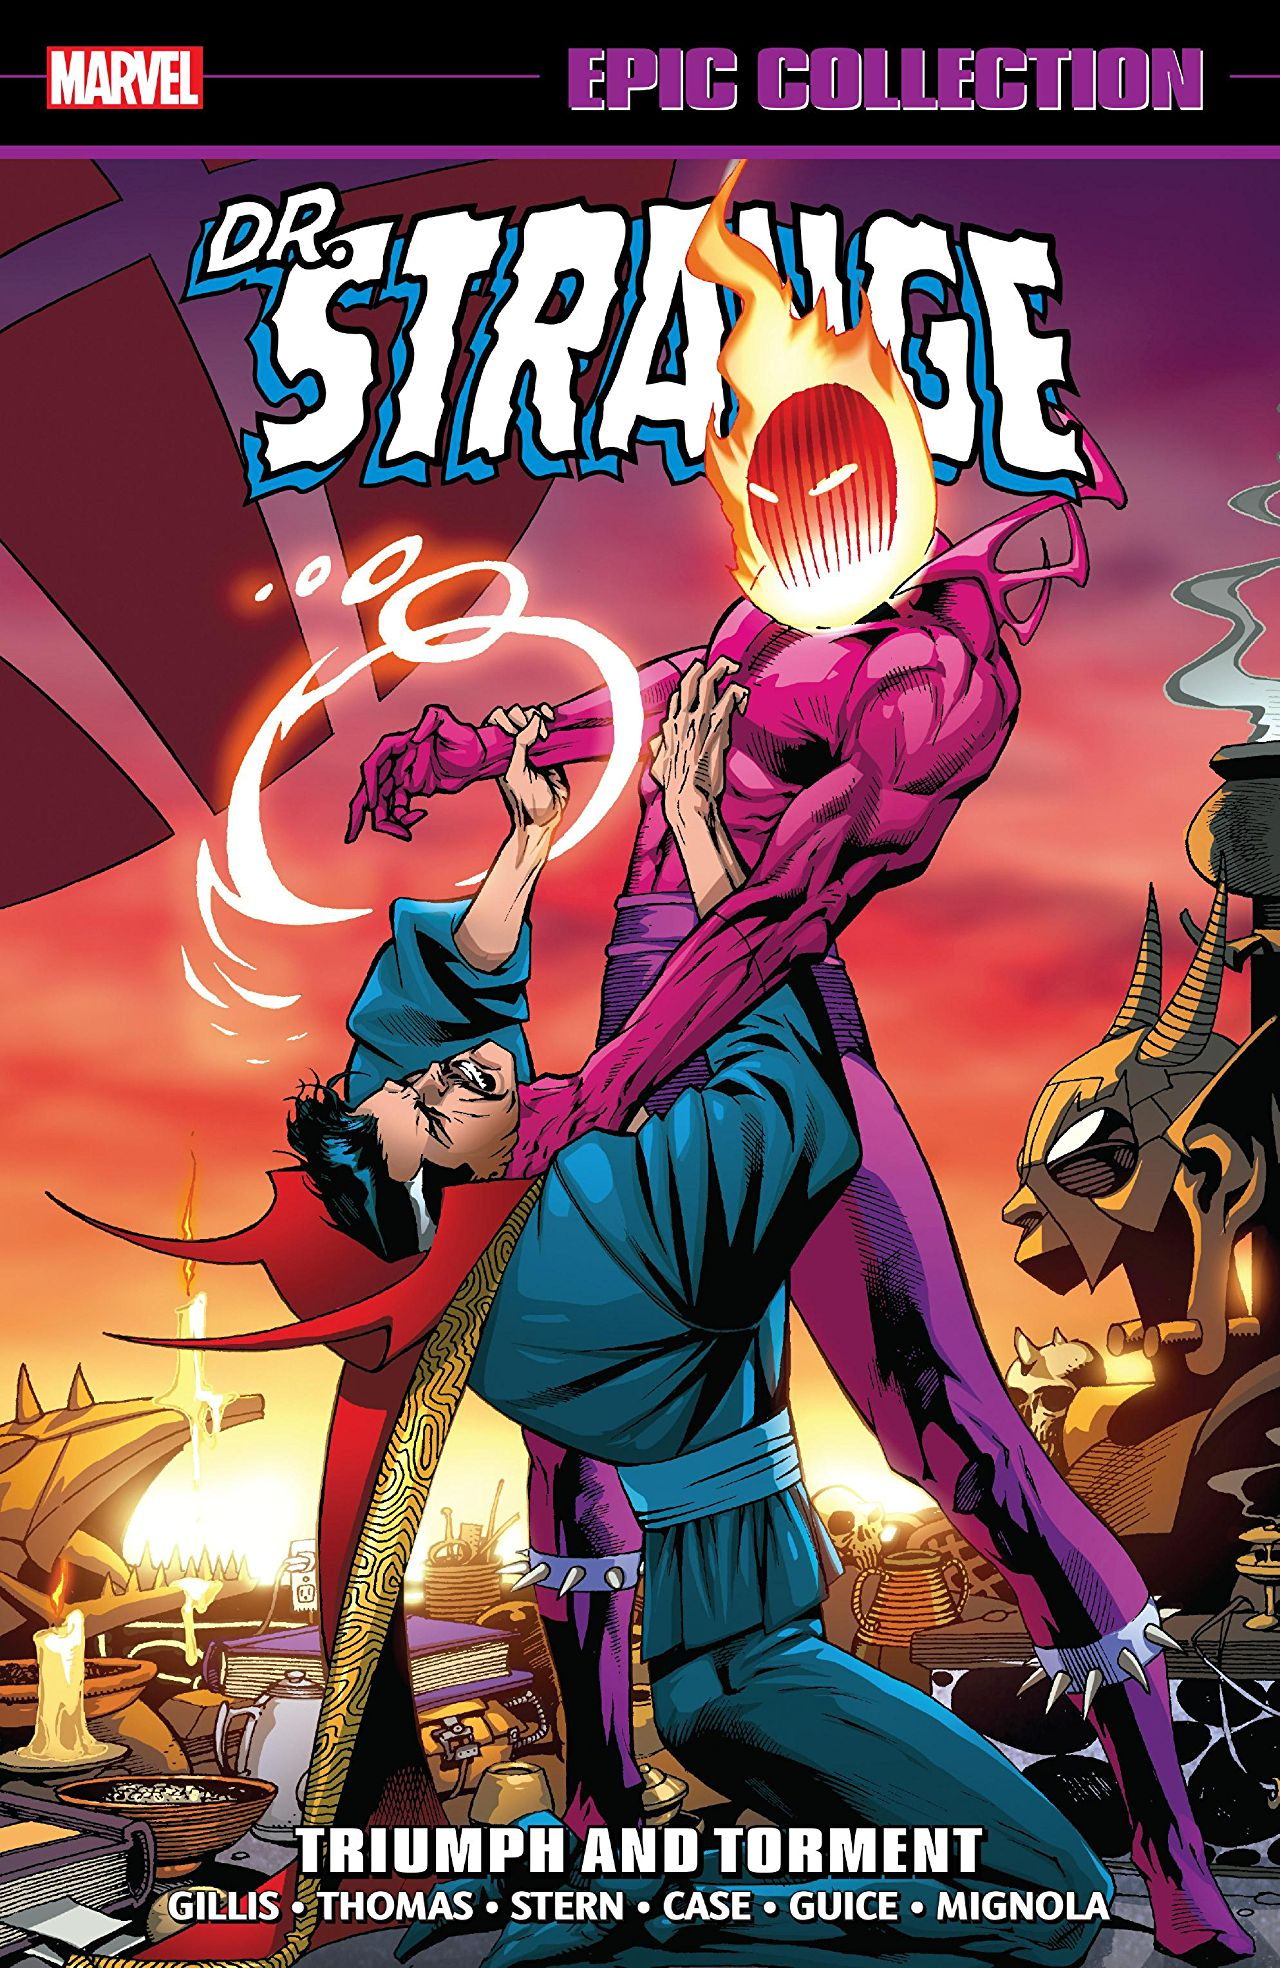 Doctor Strange Epic Collection: Triumph and Torment Review